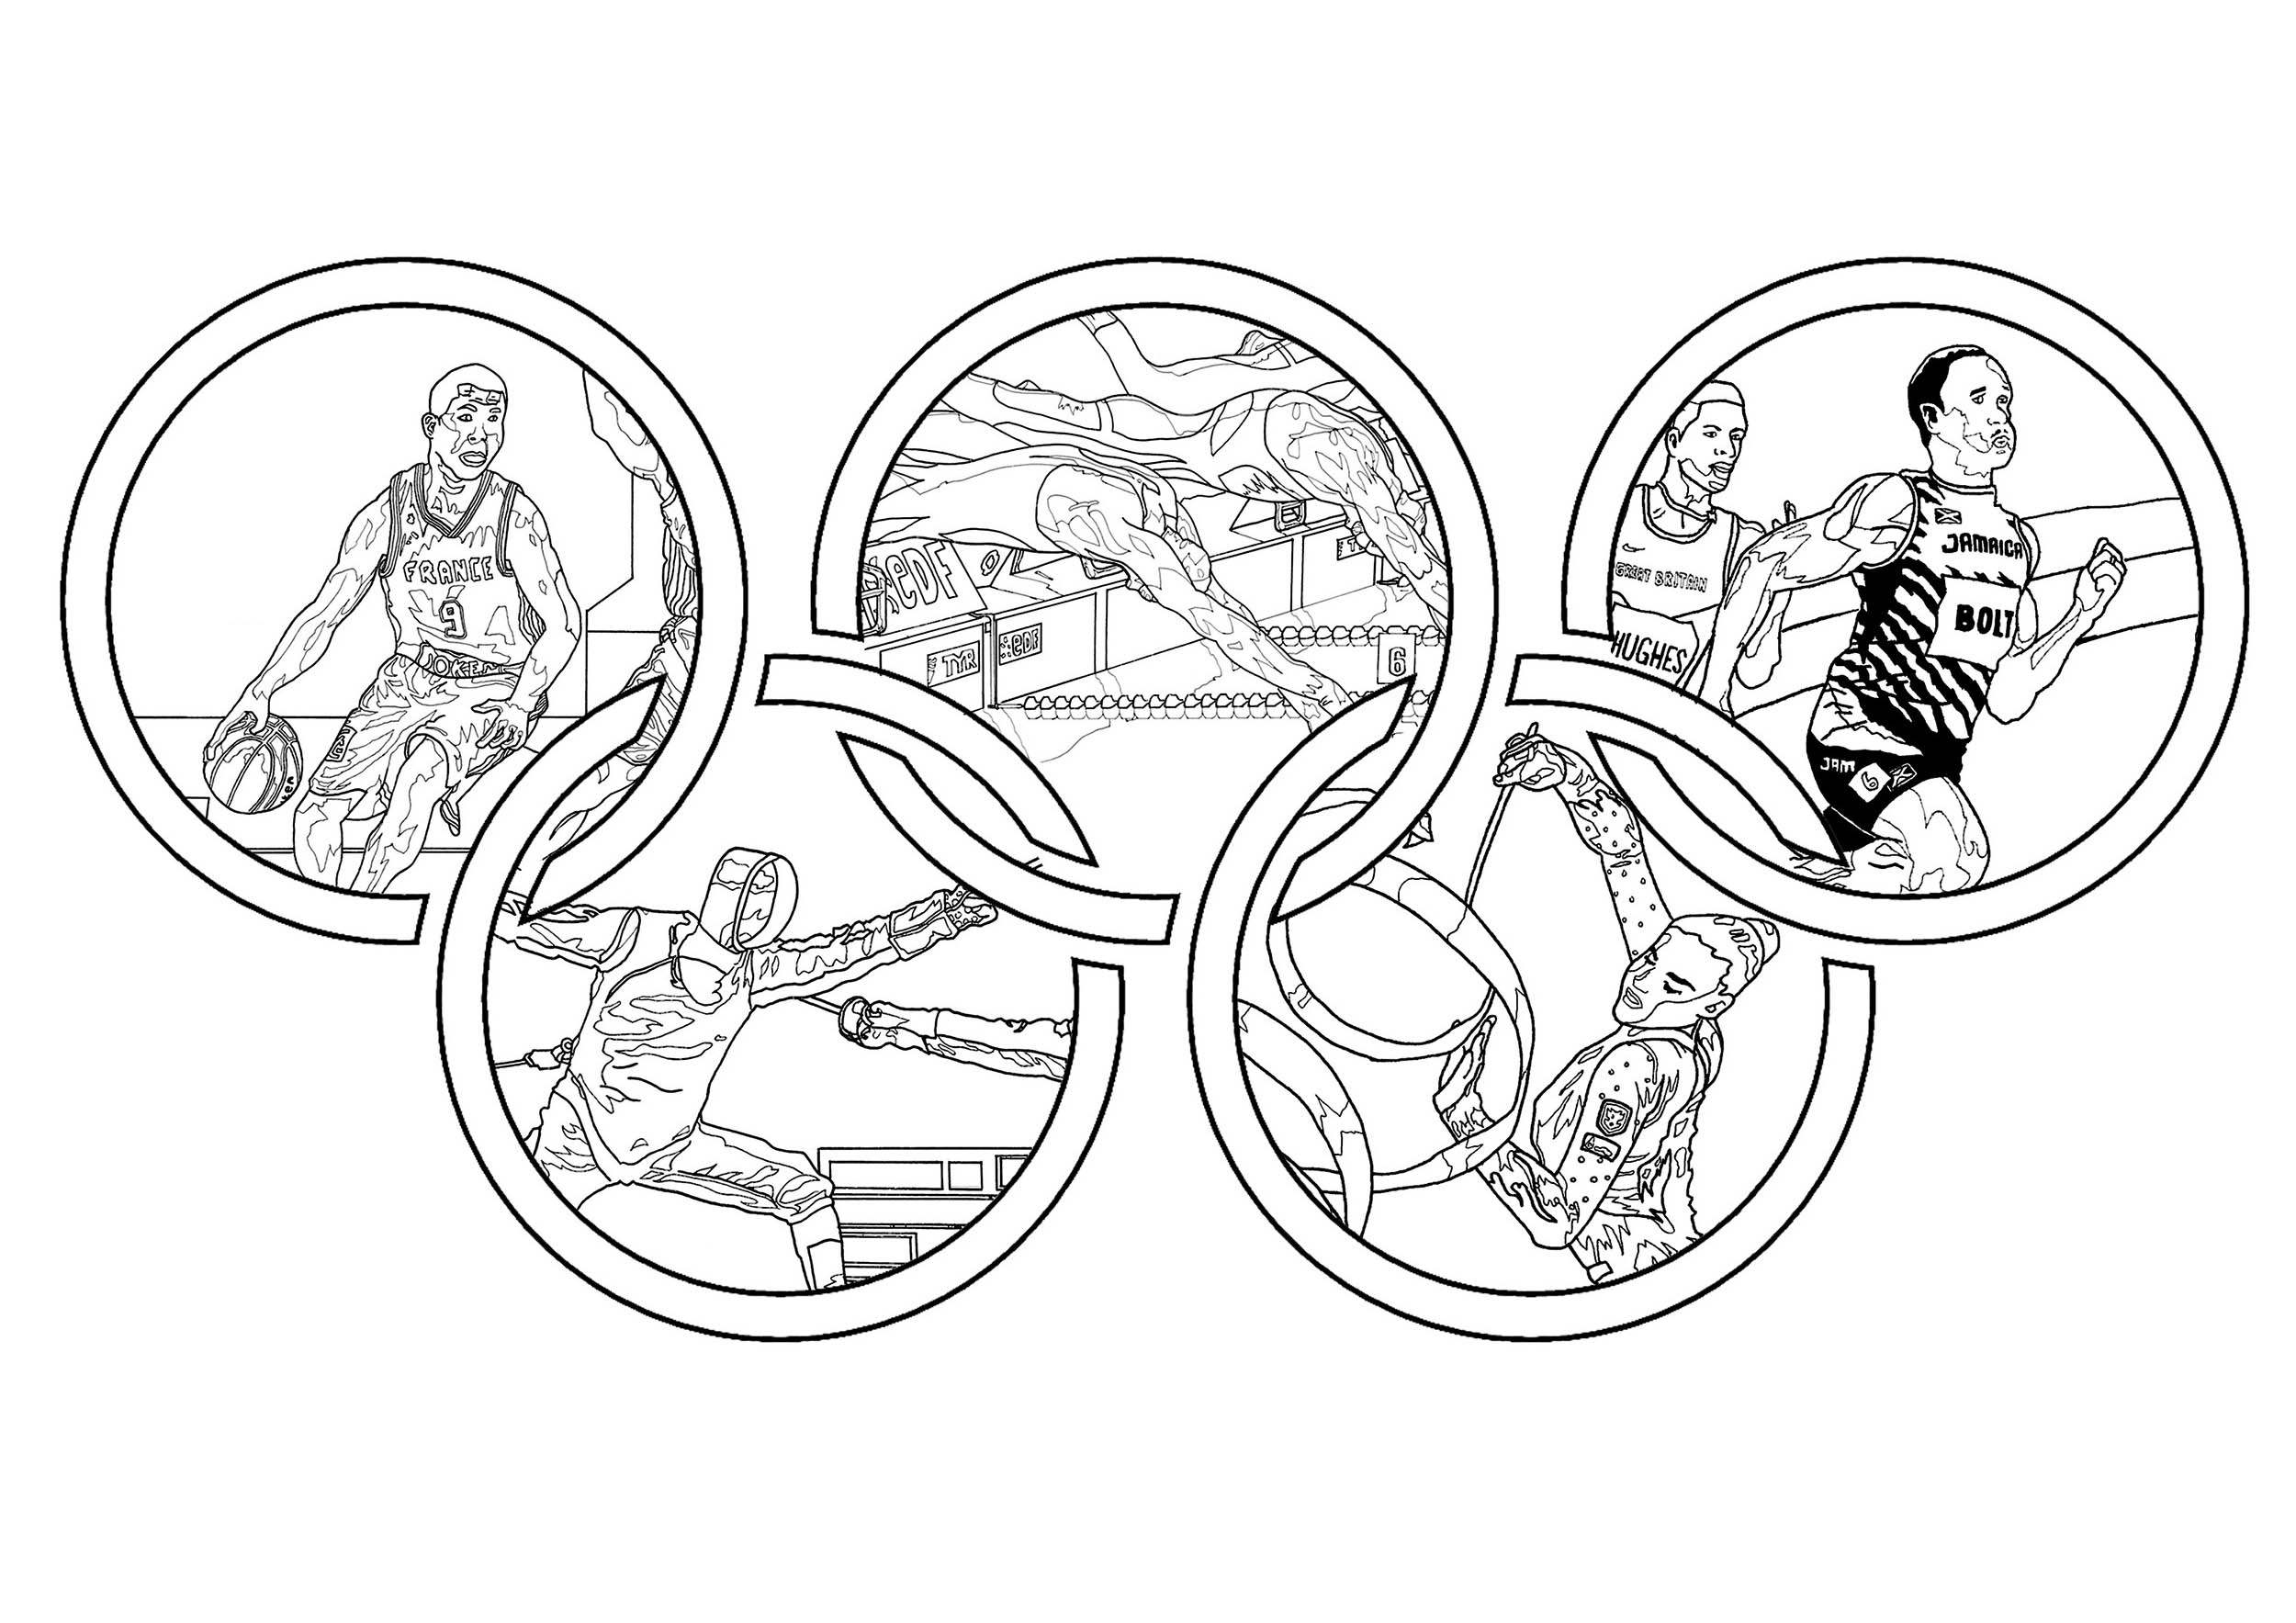 Olympic Games Olympic & Sport Adult Coloring Pages Gallery Of Special Olympics Coloring Pages Inspirational Olympic torch Coloring Download